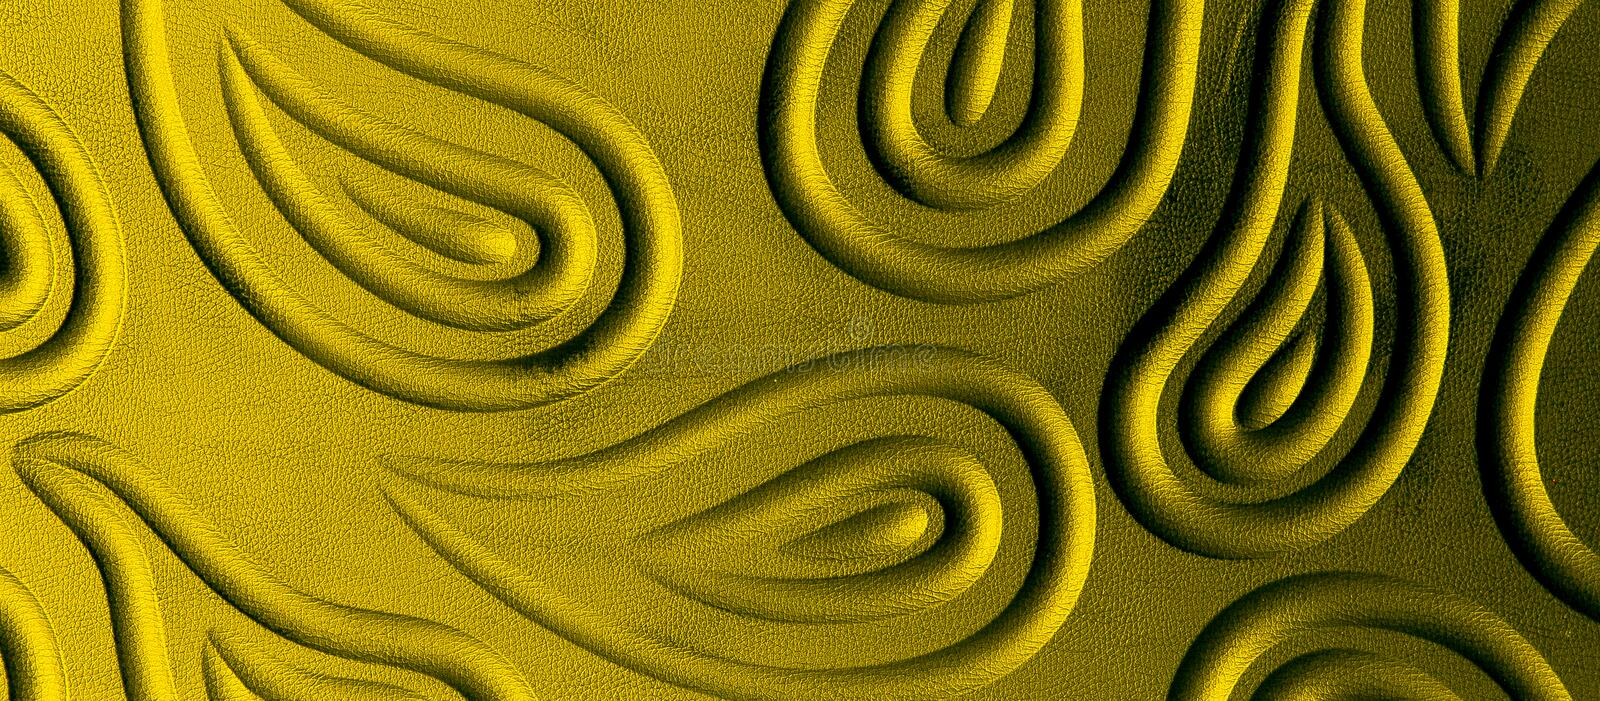 Gold leather texture. able to use as a background royalty free stock photo